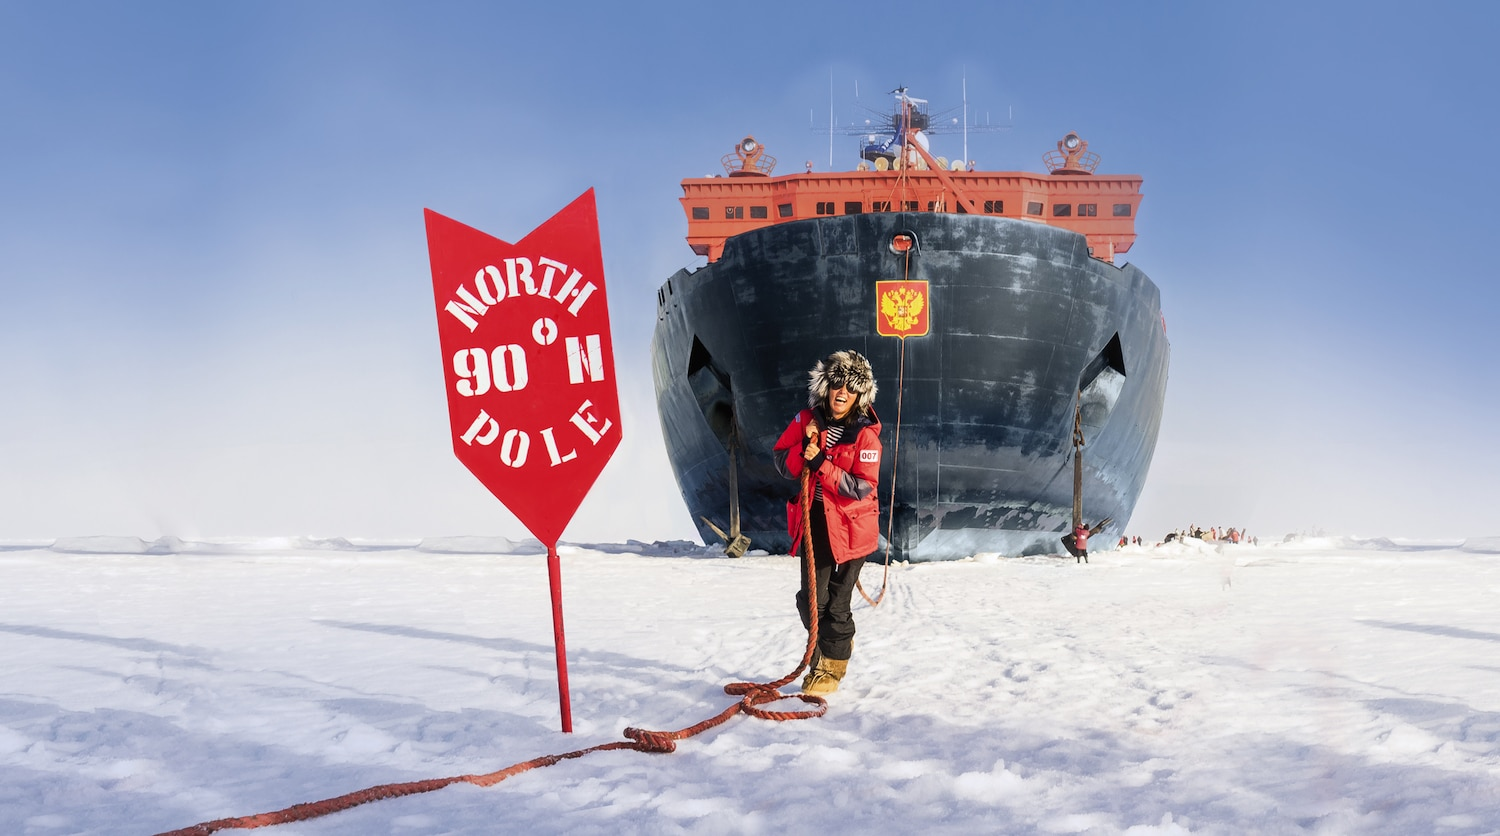 north pole cruise, Russia tour